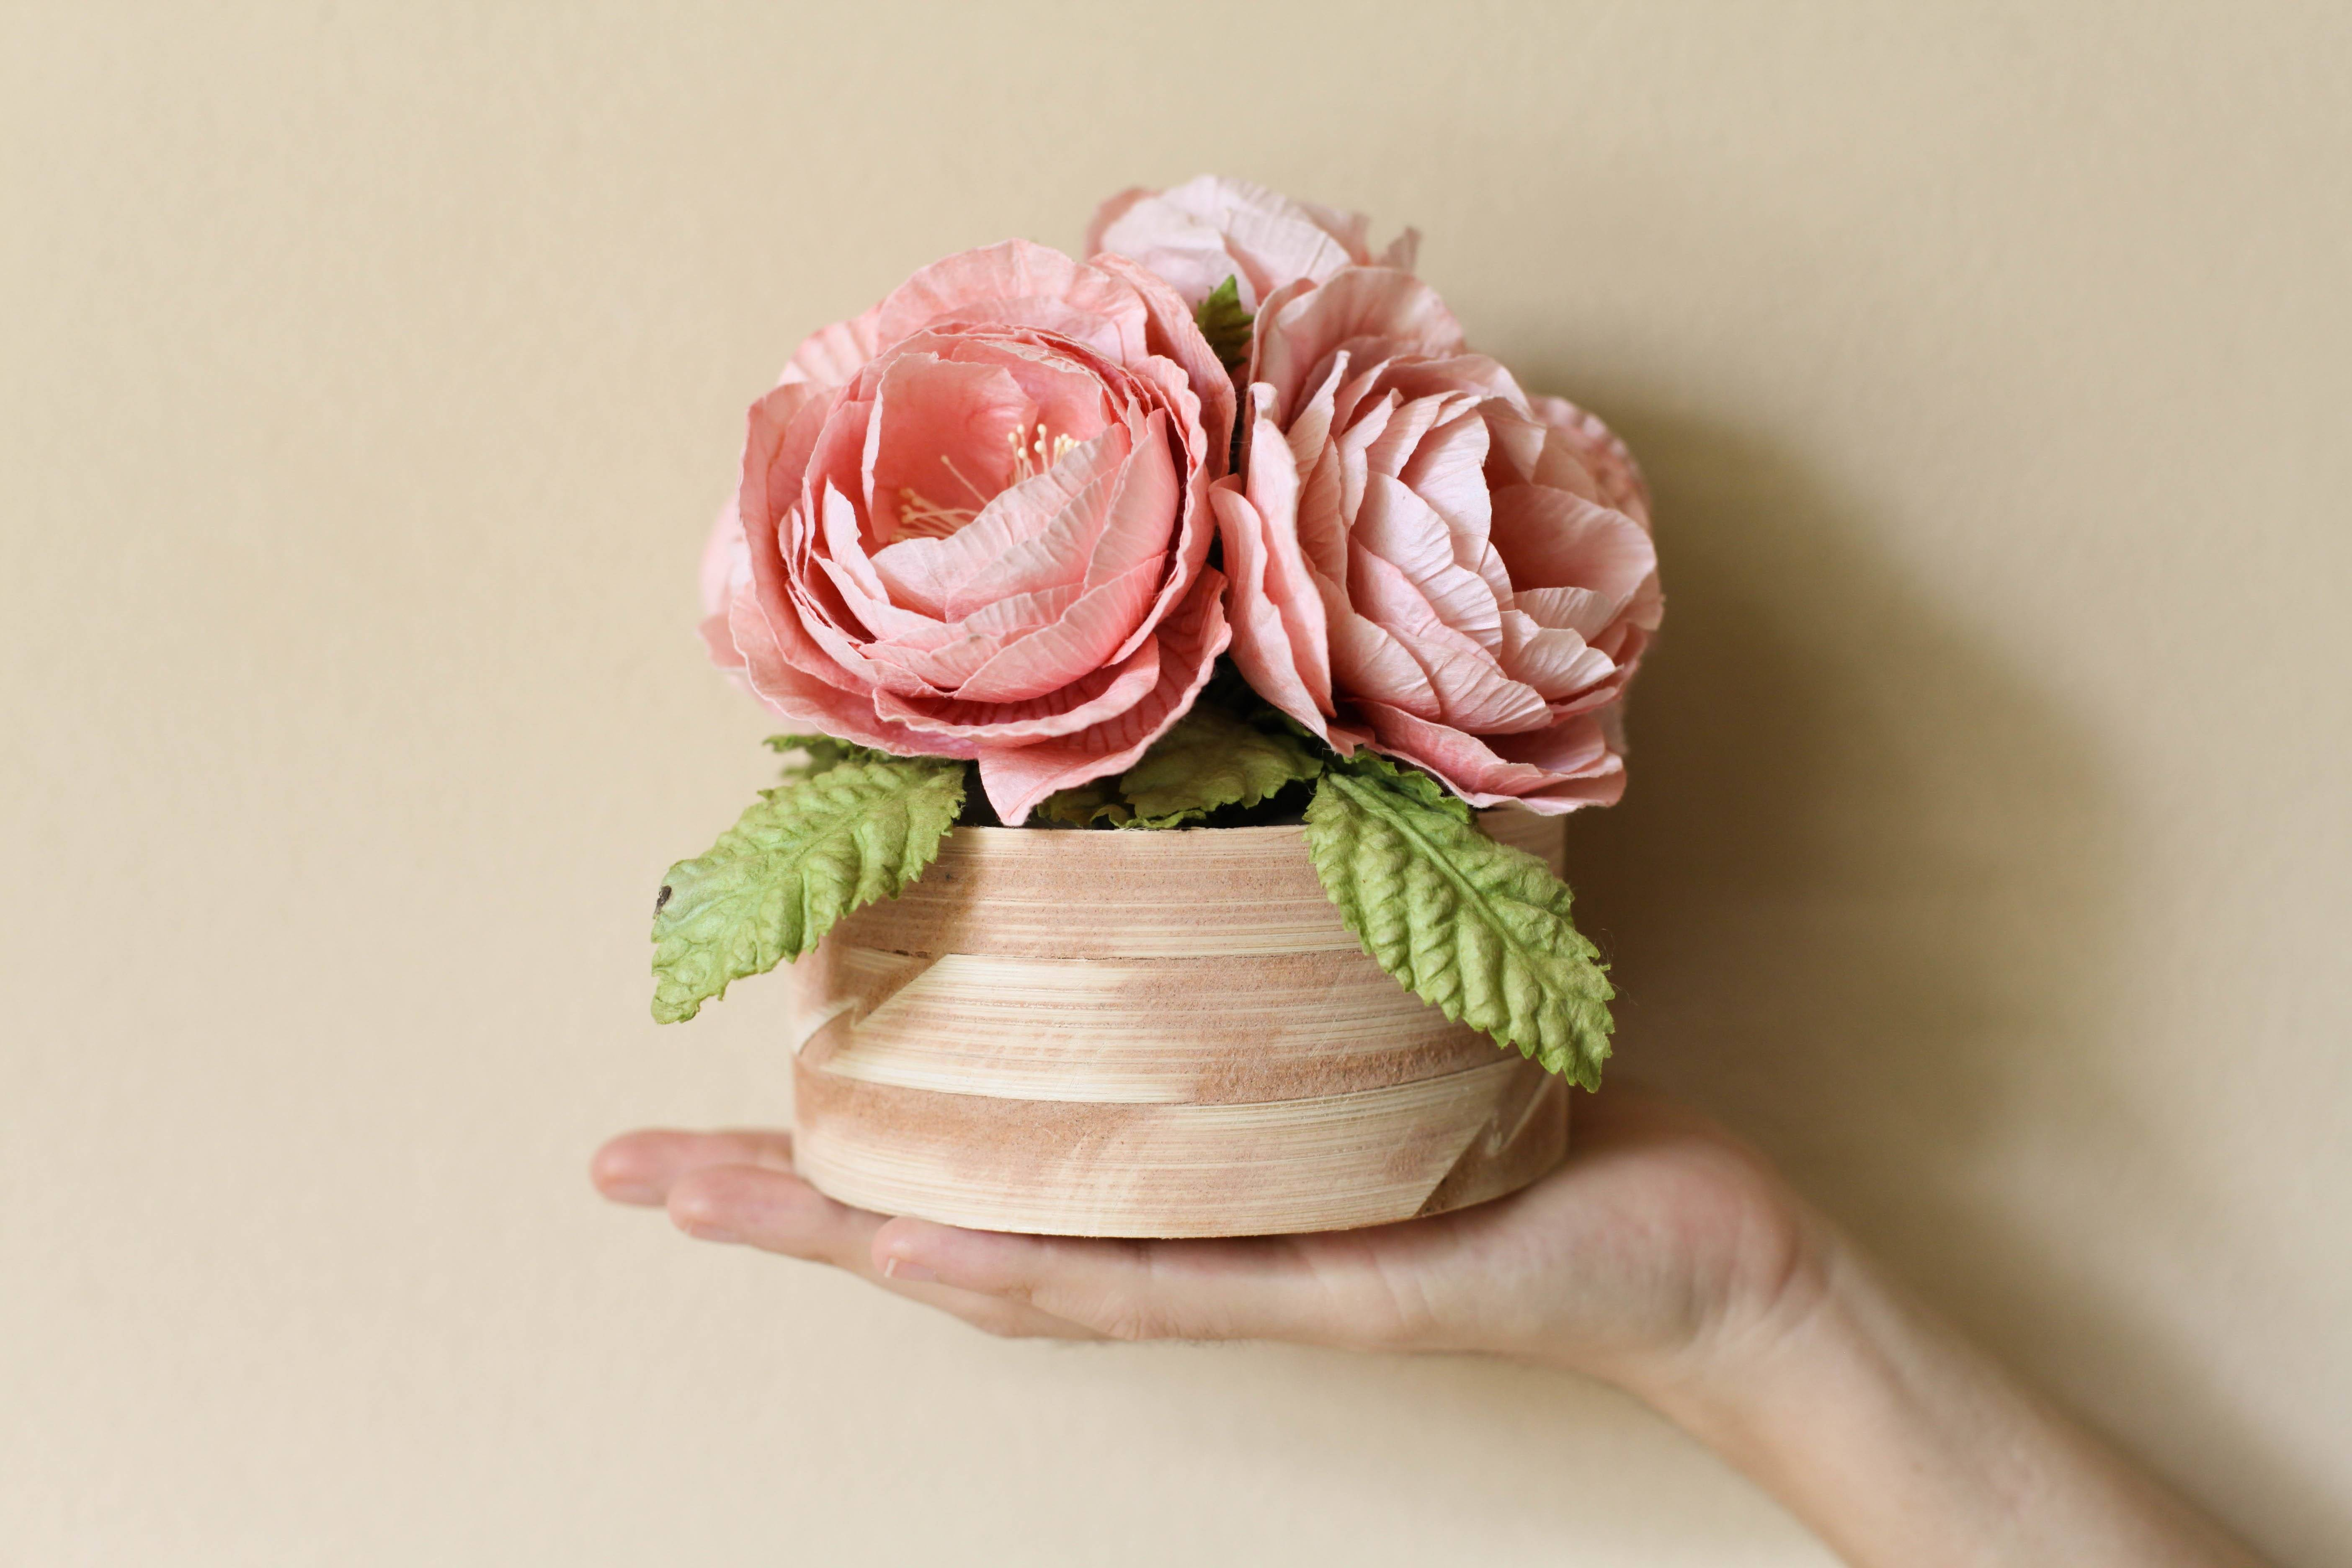 Gift ideas to imitate: flowers made of crepe paper